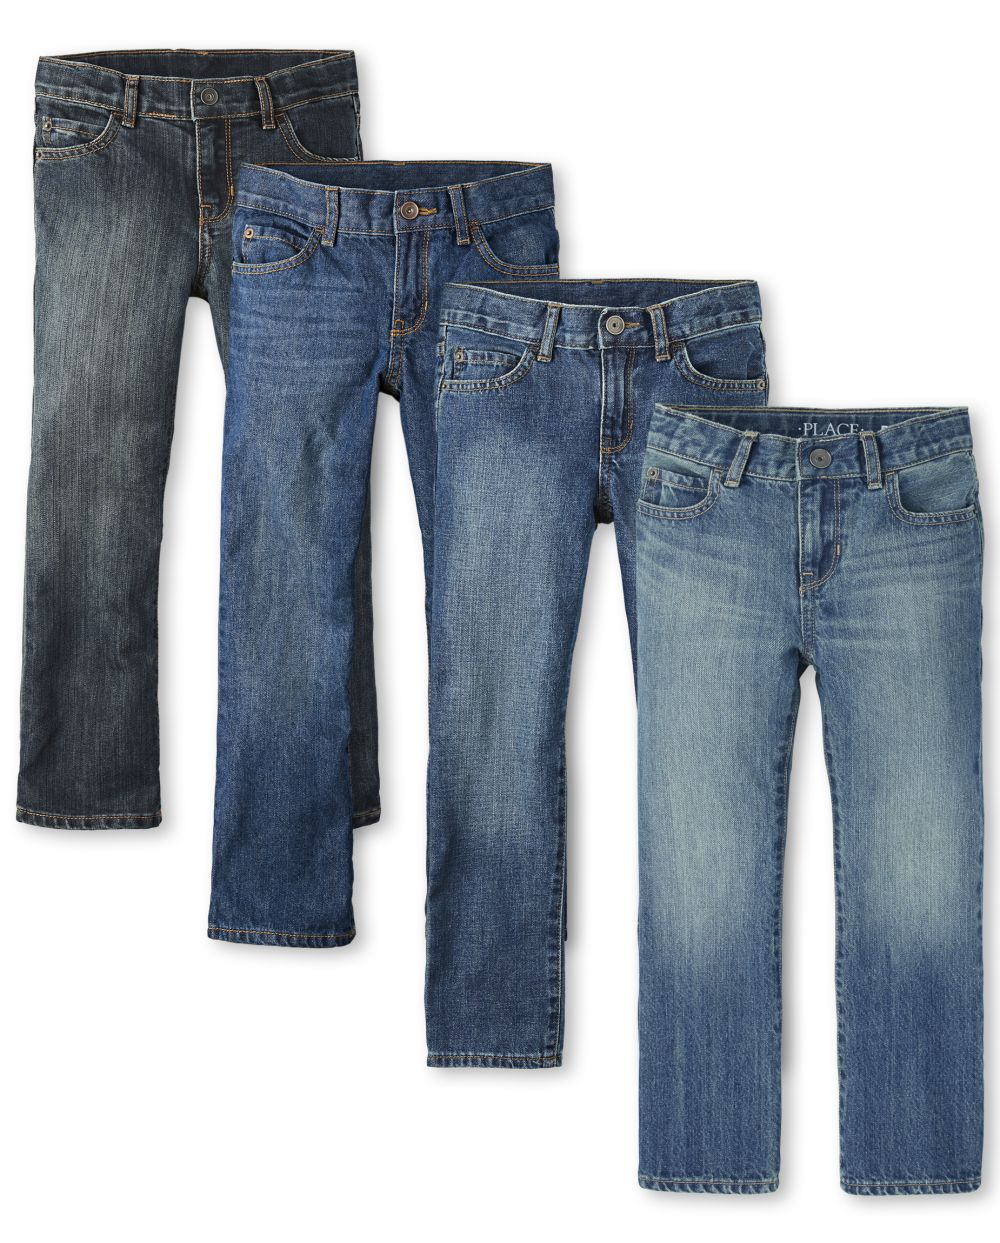 Boys Basic Bootcut Jeans 4-Pack - Multi